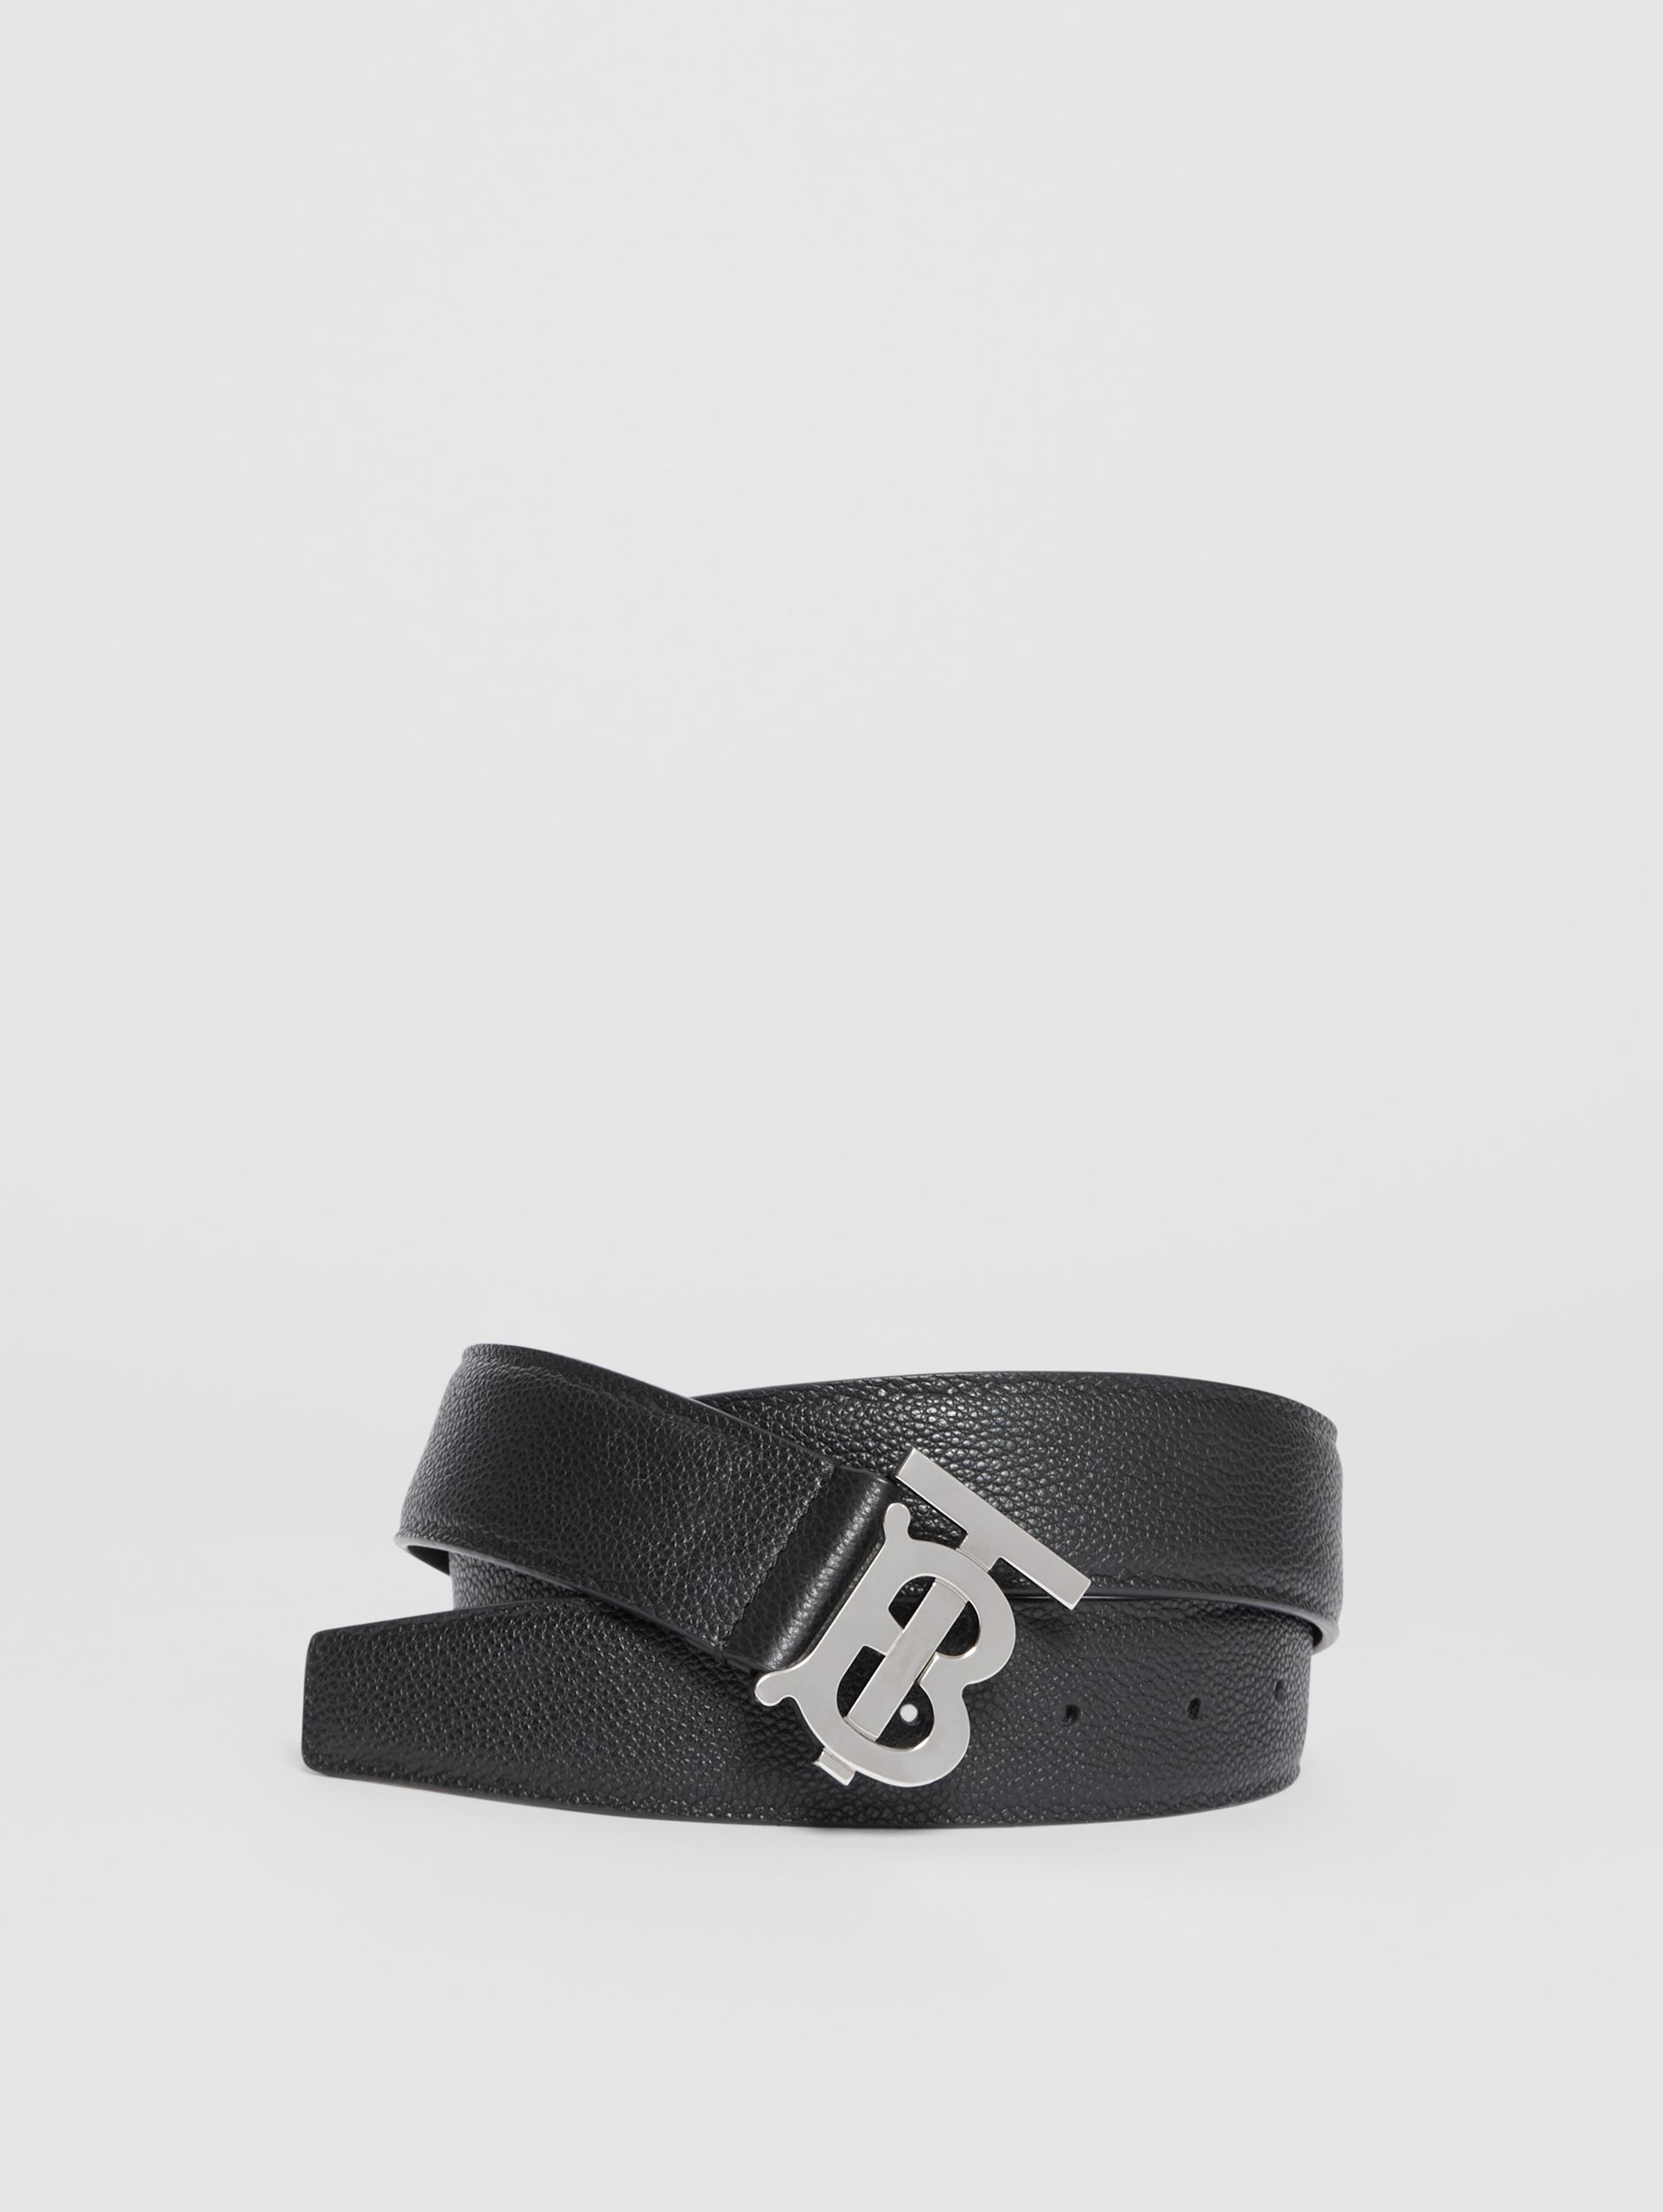 Monogram Motif Grainy Leather Belt in Black - Men | Burberry - 1